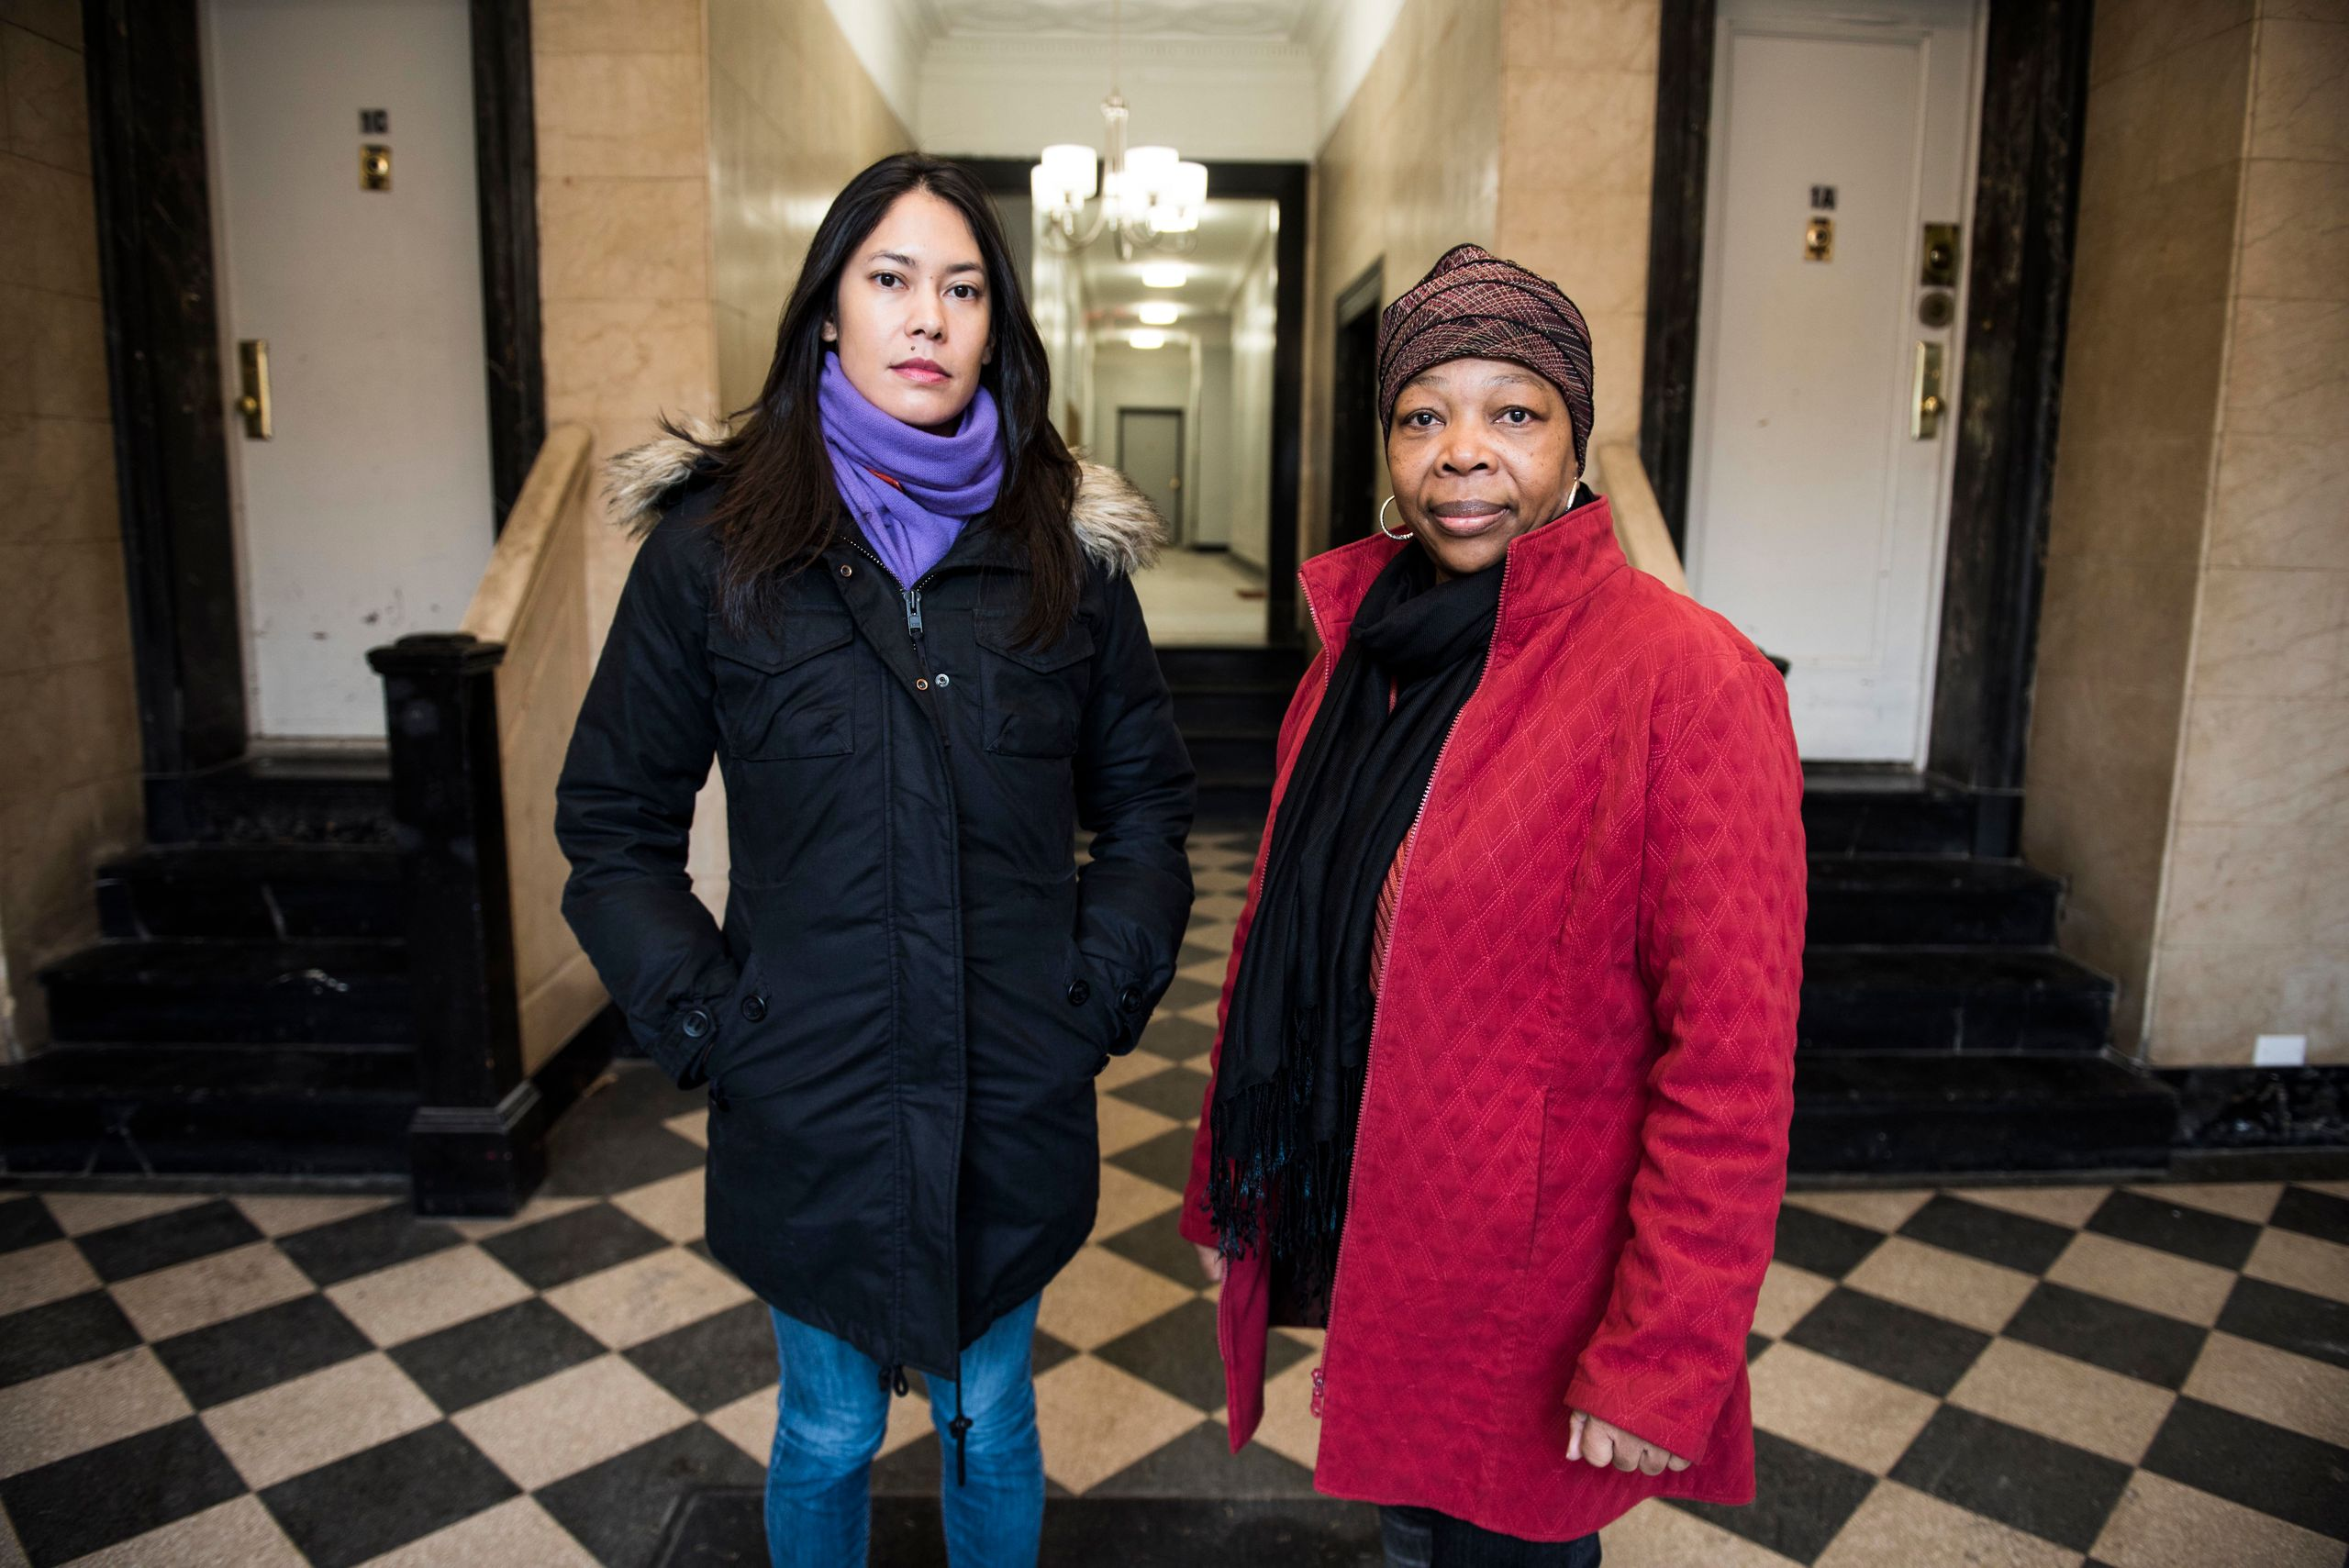 Dara Soukamneuth and Clentine Fenner inside the lobby of their apartment building in Crown Heights, Brooklyn, on Jan. 13, 201